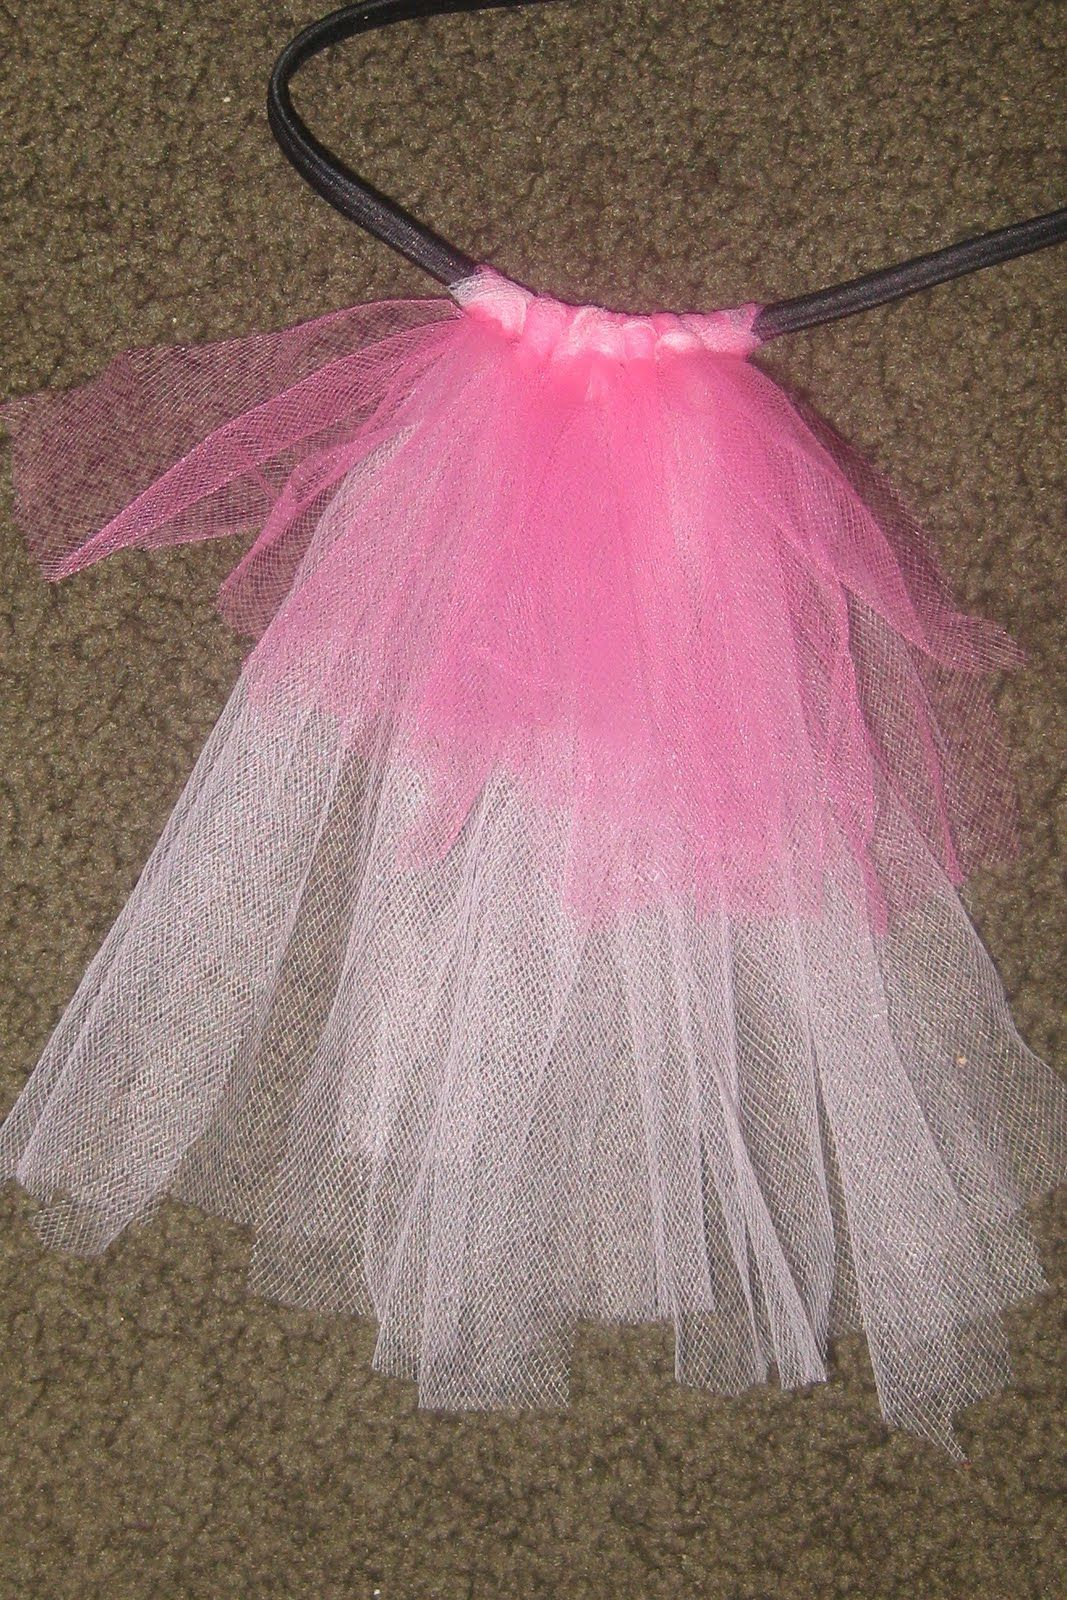 394112cdbb Double Layer Tutu - if I make it myself, then it's worthwhile to dress my  kids in matching outfits, right??? @Rachel R R Rubenson @Sara Eriksson  Eriksson ...